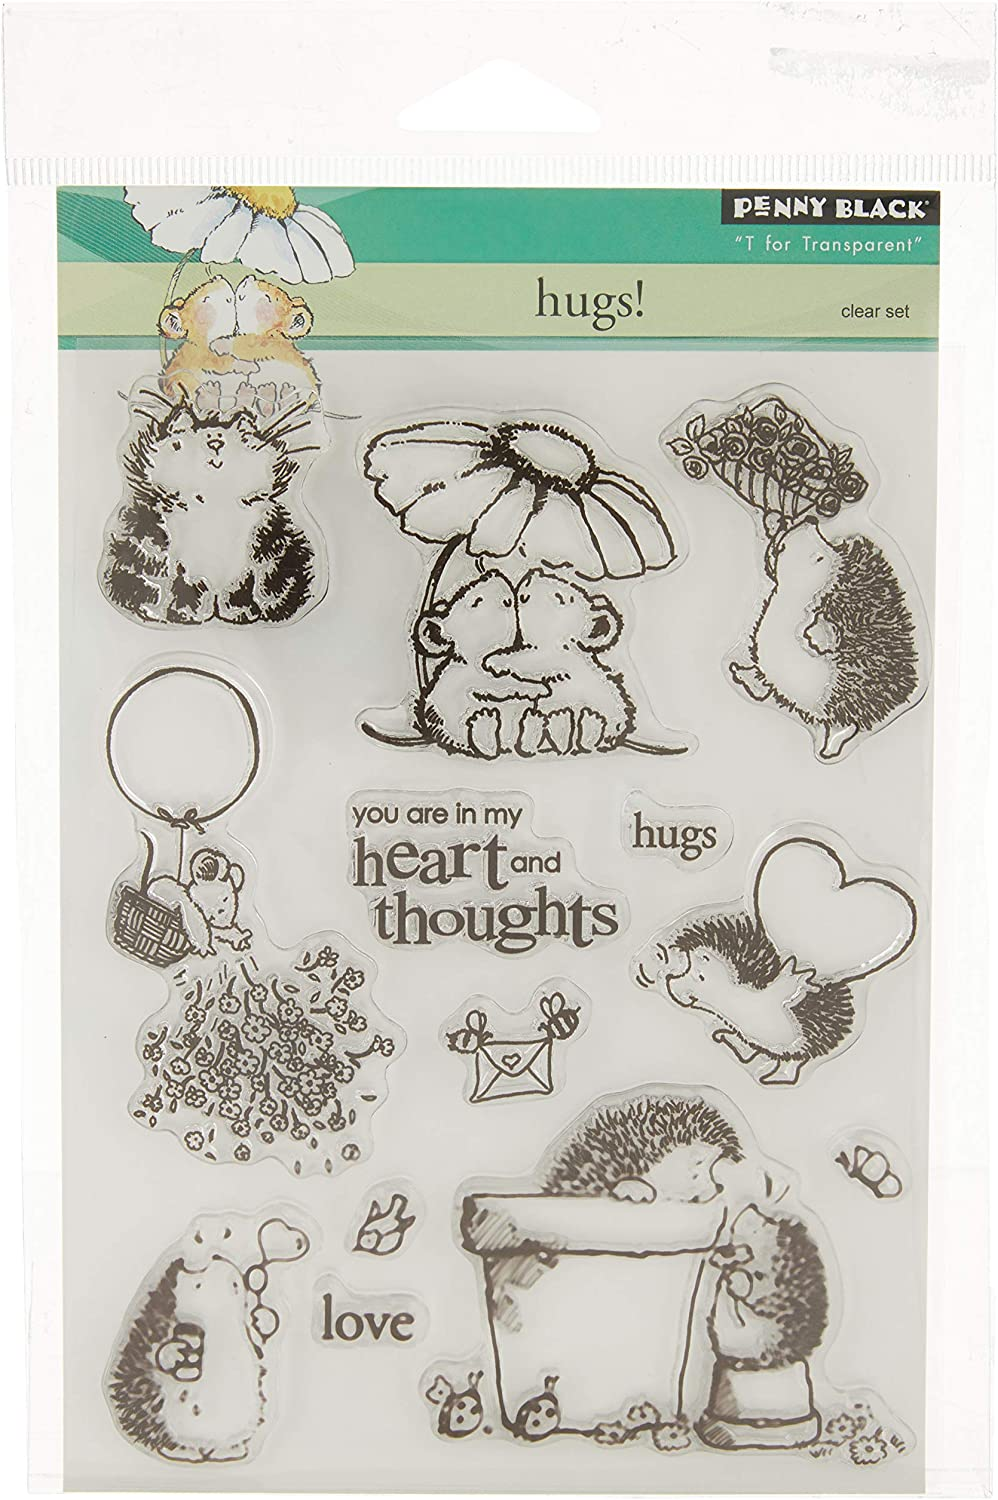 Penny Challenge the lowest Courier shipping free shipping price Black PB30020 Clear Hugs Set Stamp